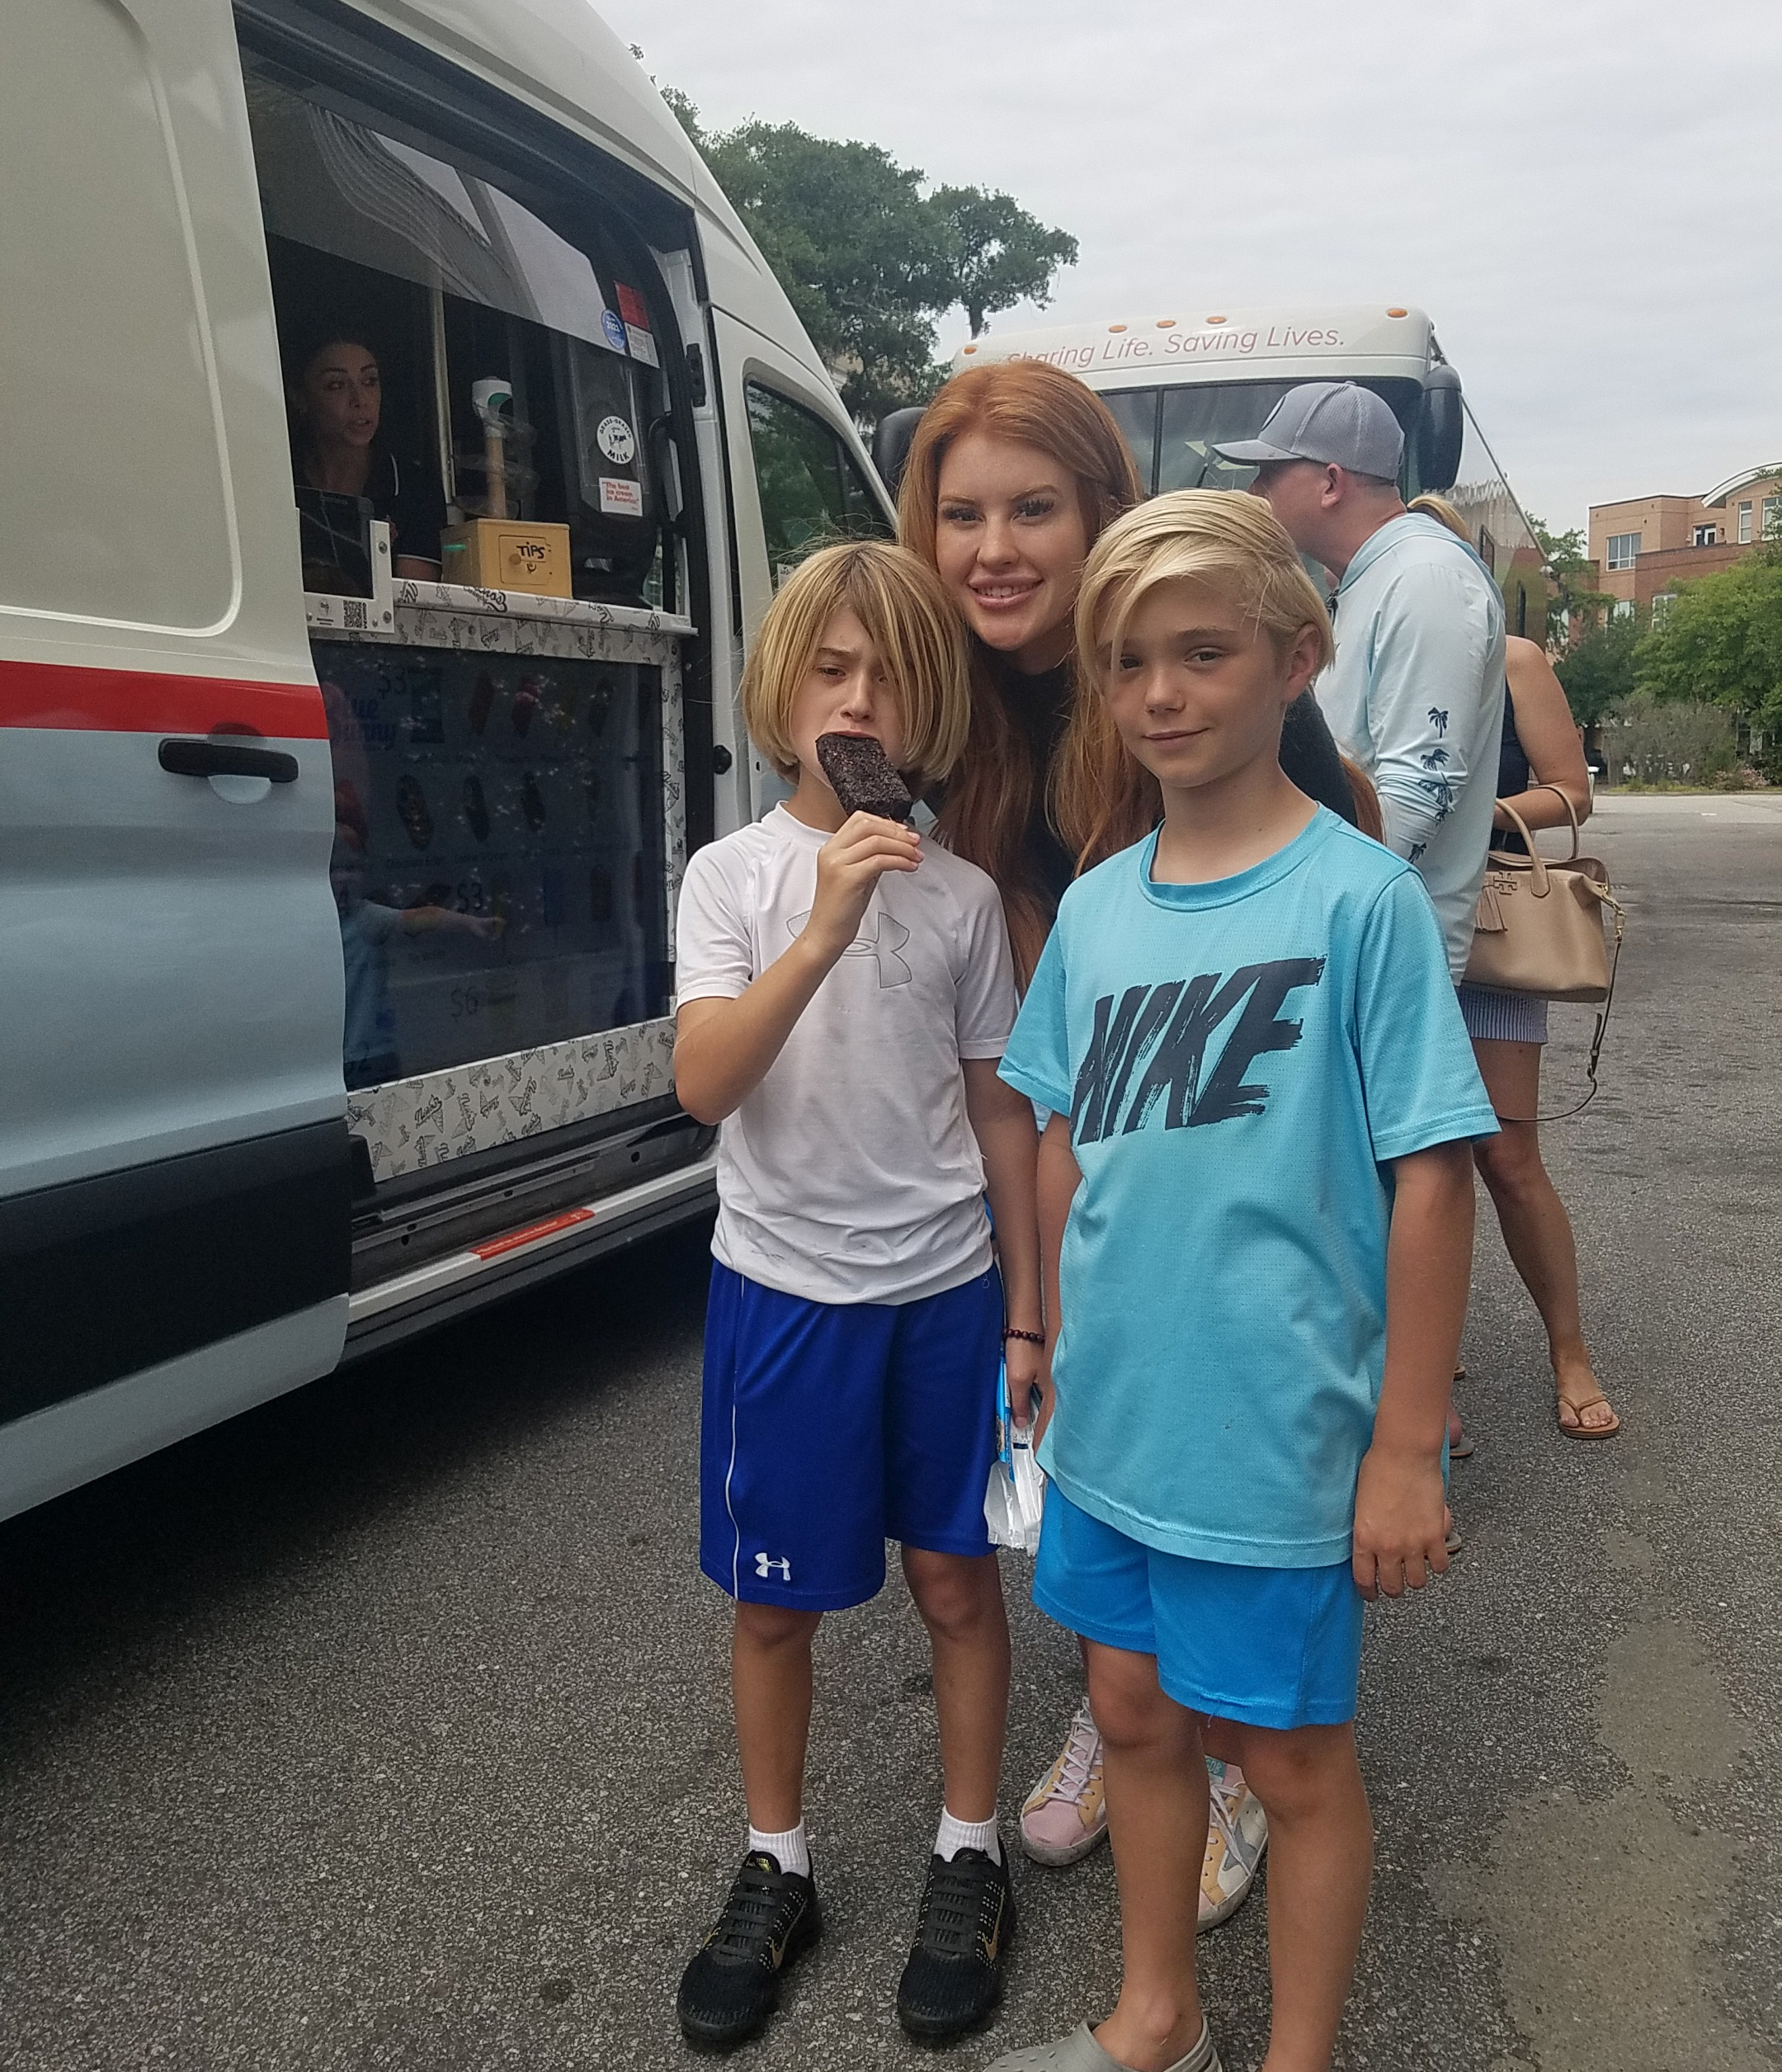 Suzanne Detar - Sabastian, Christian and Kayla stopped by Nino's ice cream truck.